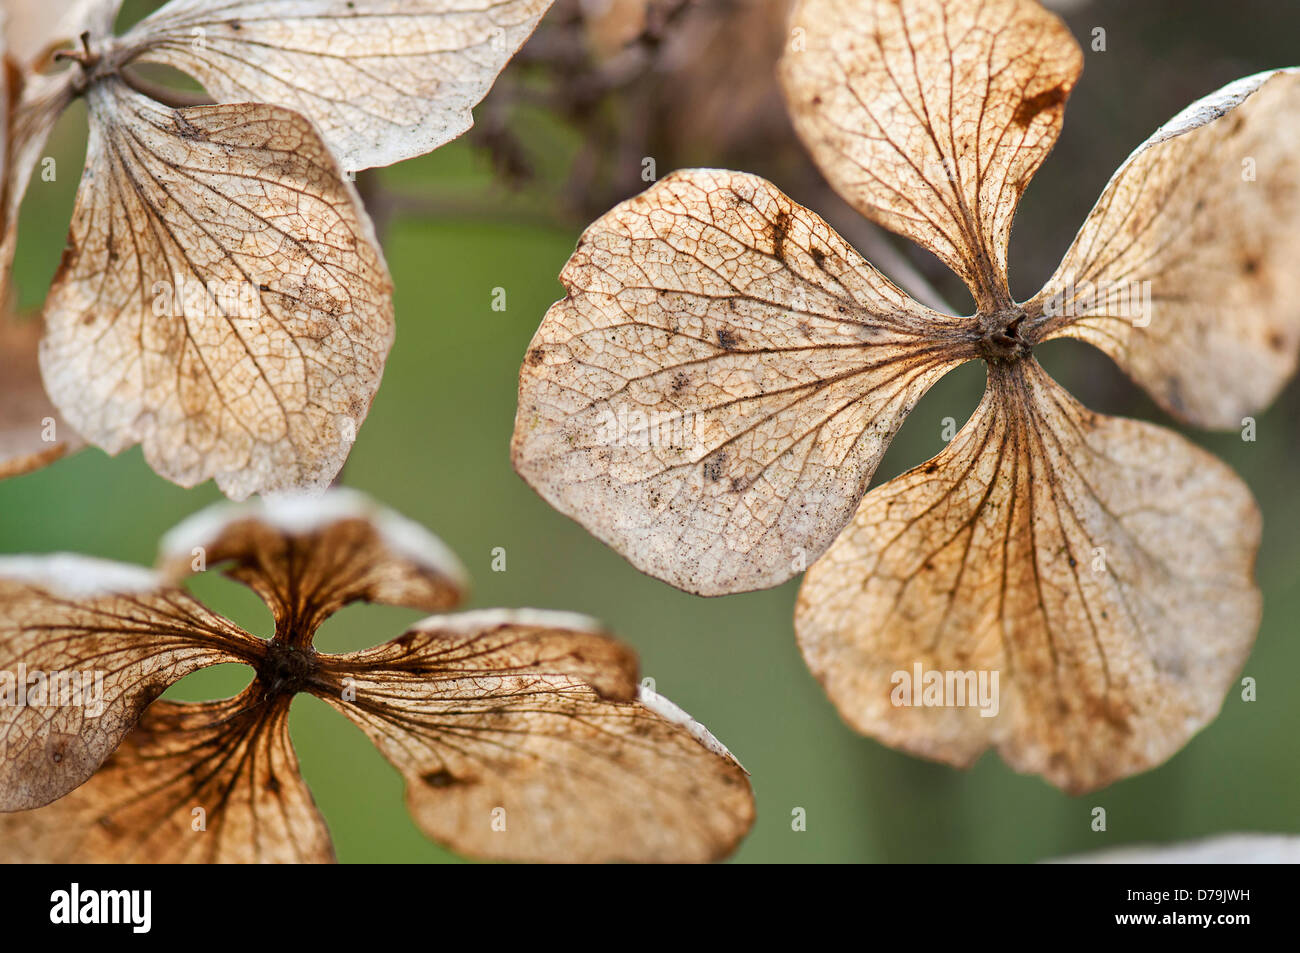 Translucent, spent and dried flowers of Hydrangea macrophylla 'Mariesii Perfecta' with network of veins. Stock Photo